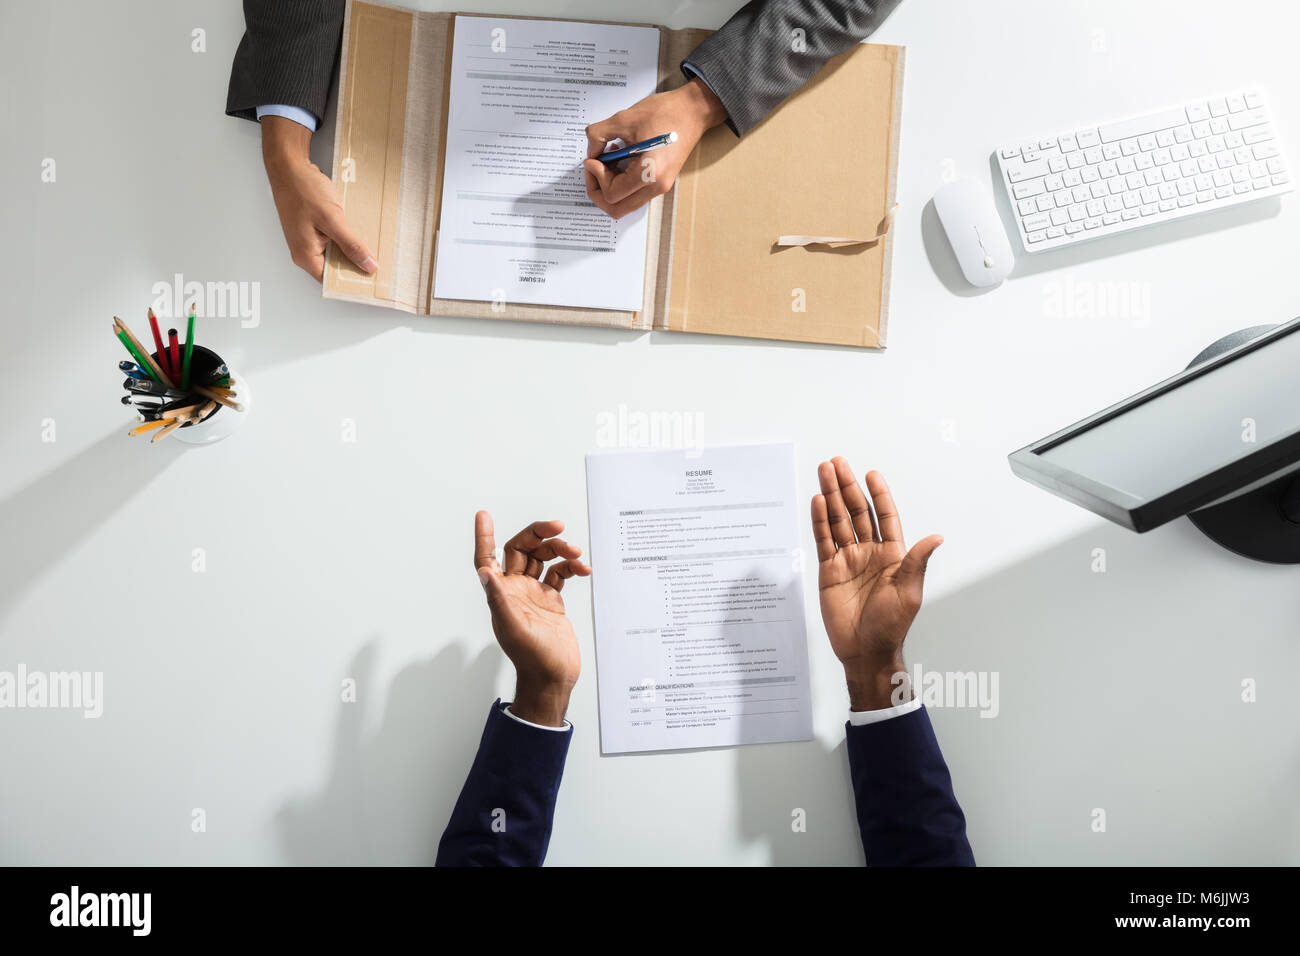 Elevated View Of Businessperson And Candidates Hand With Resume On White Desk - Stock Image